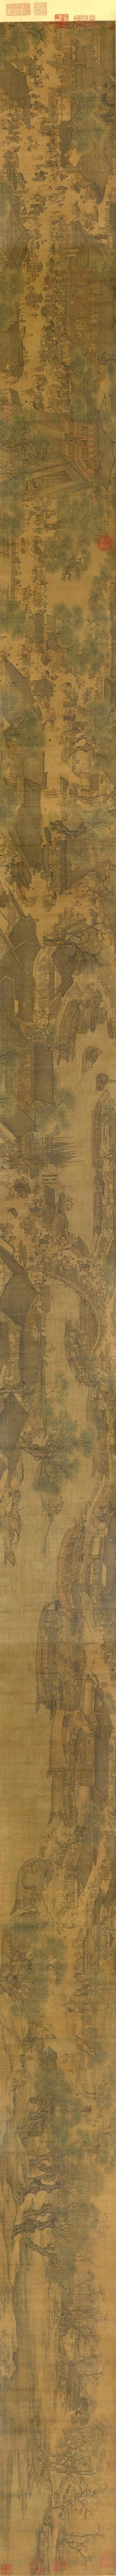 24 best chinese artifacts images chinese painting ancient china rh pinterest com